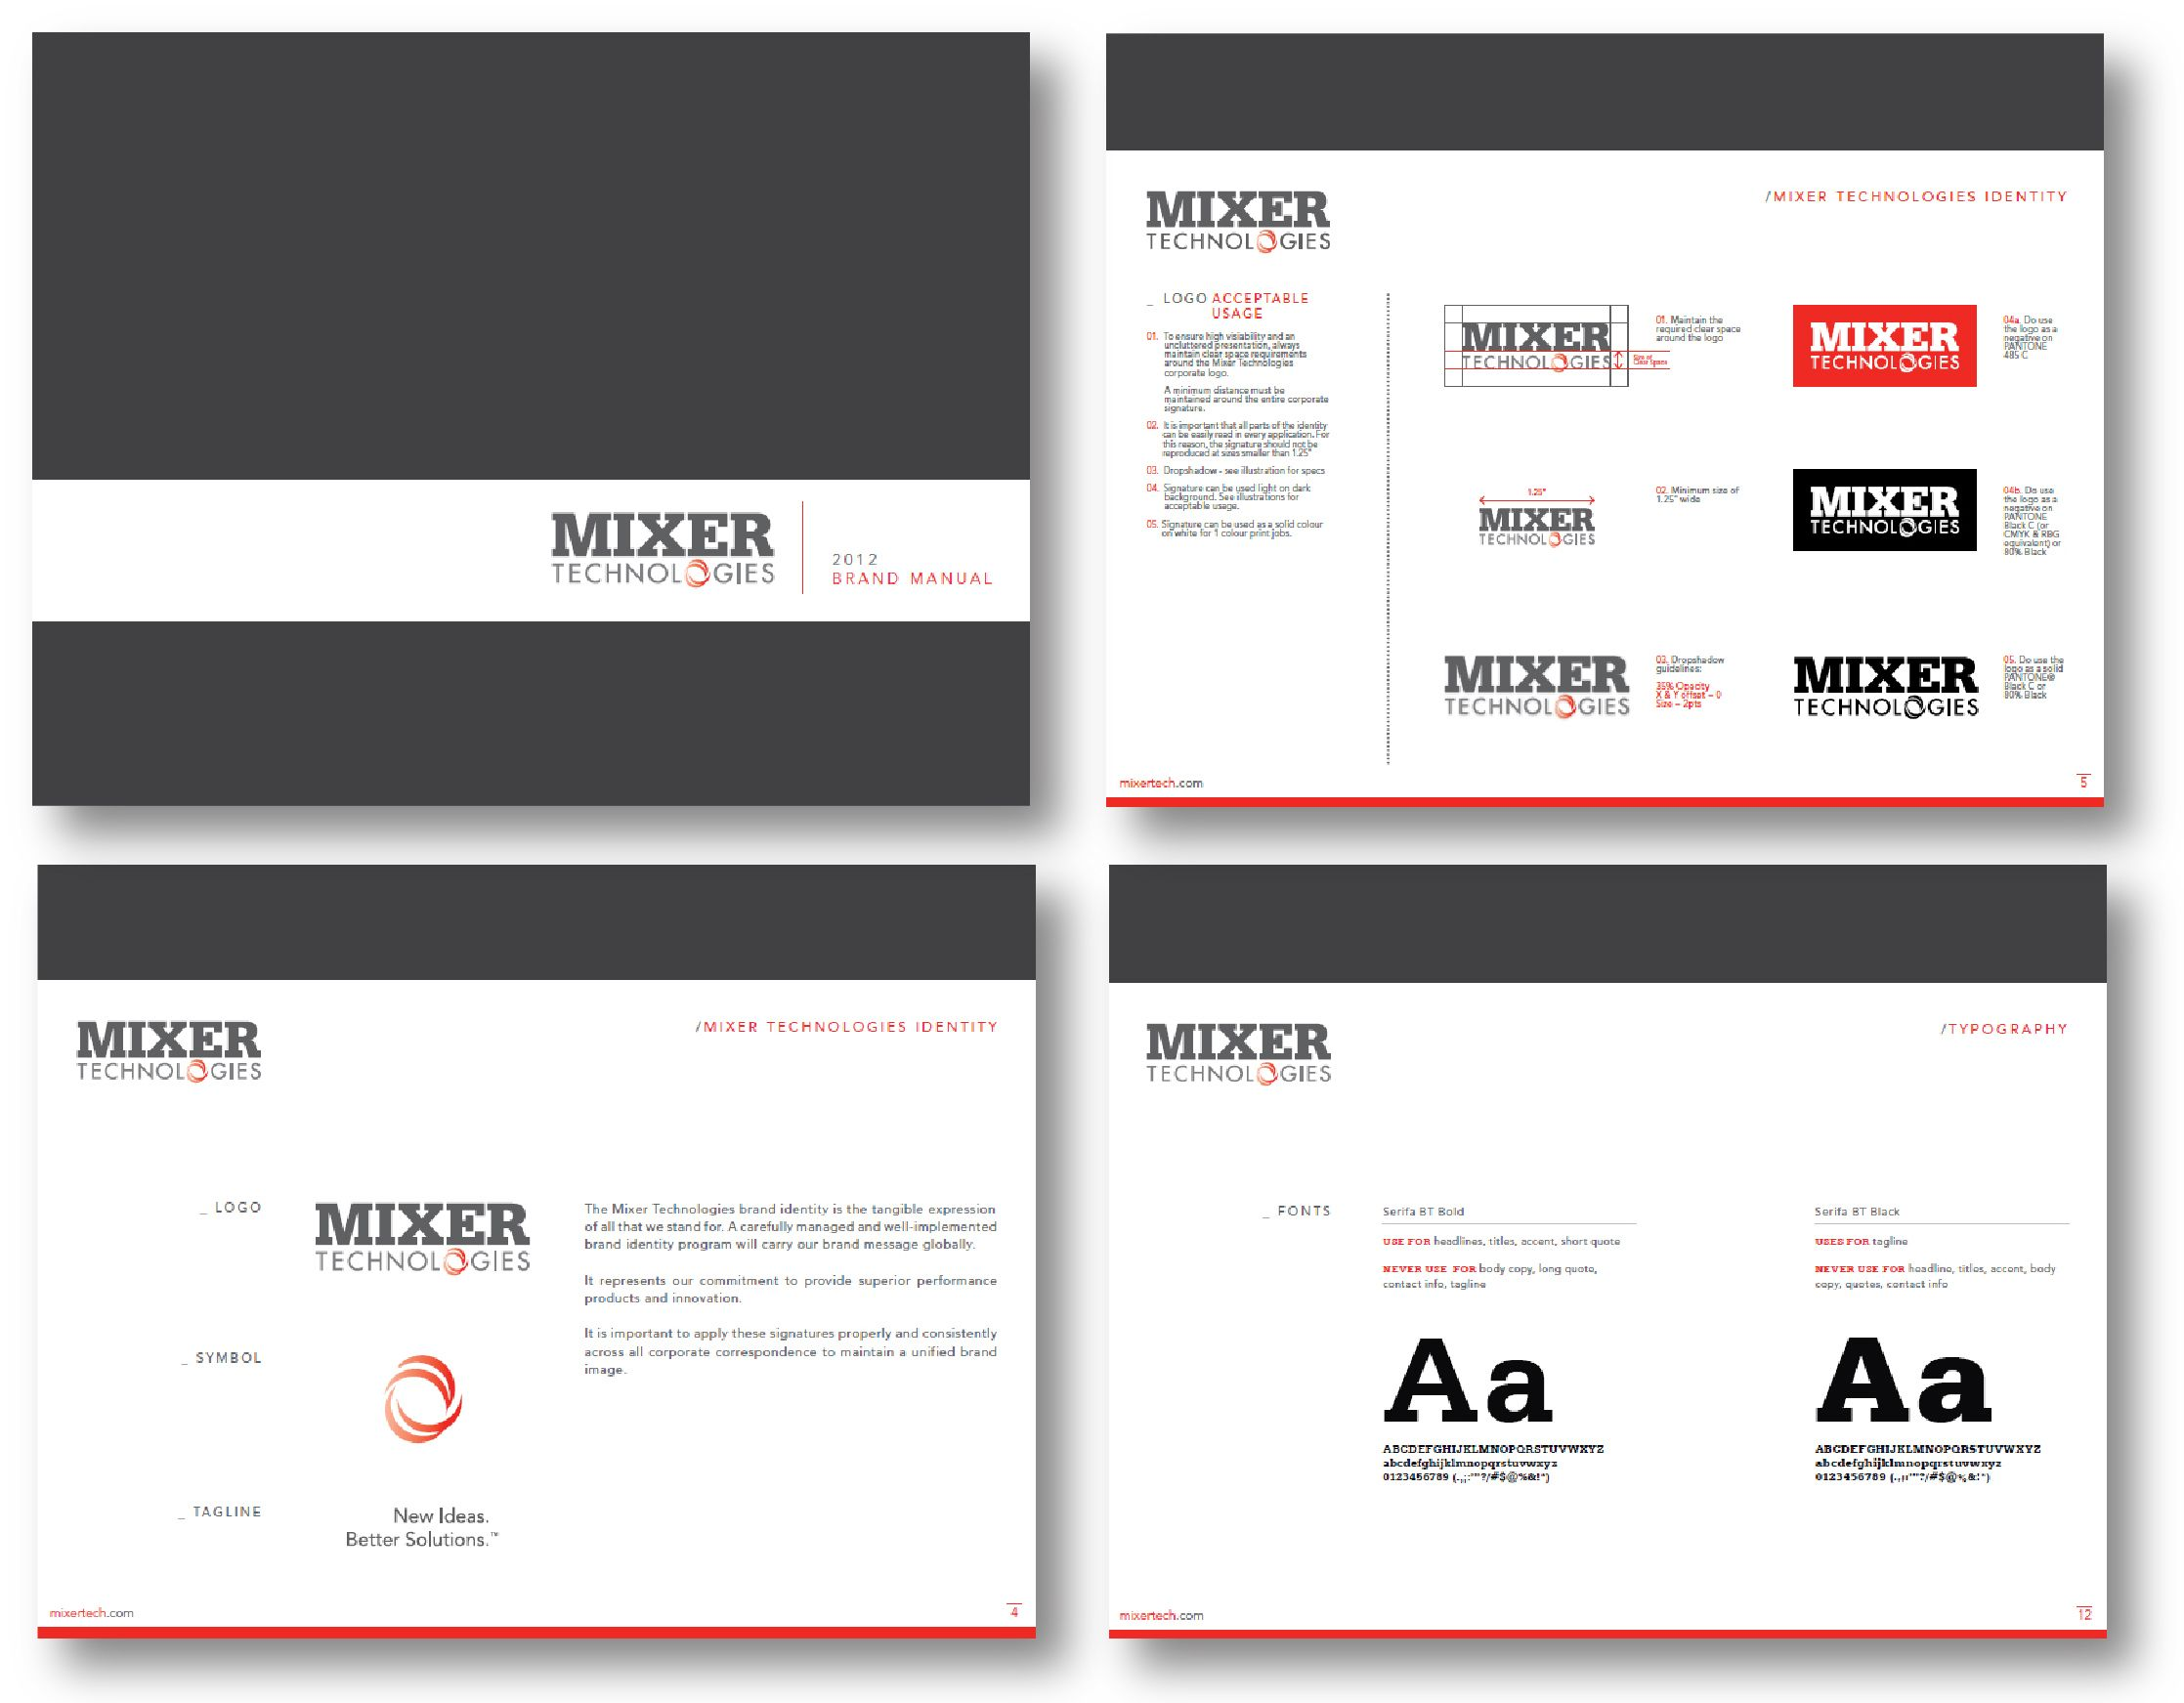 Example Of A Style Guide And Brand Manual